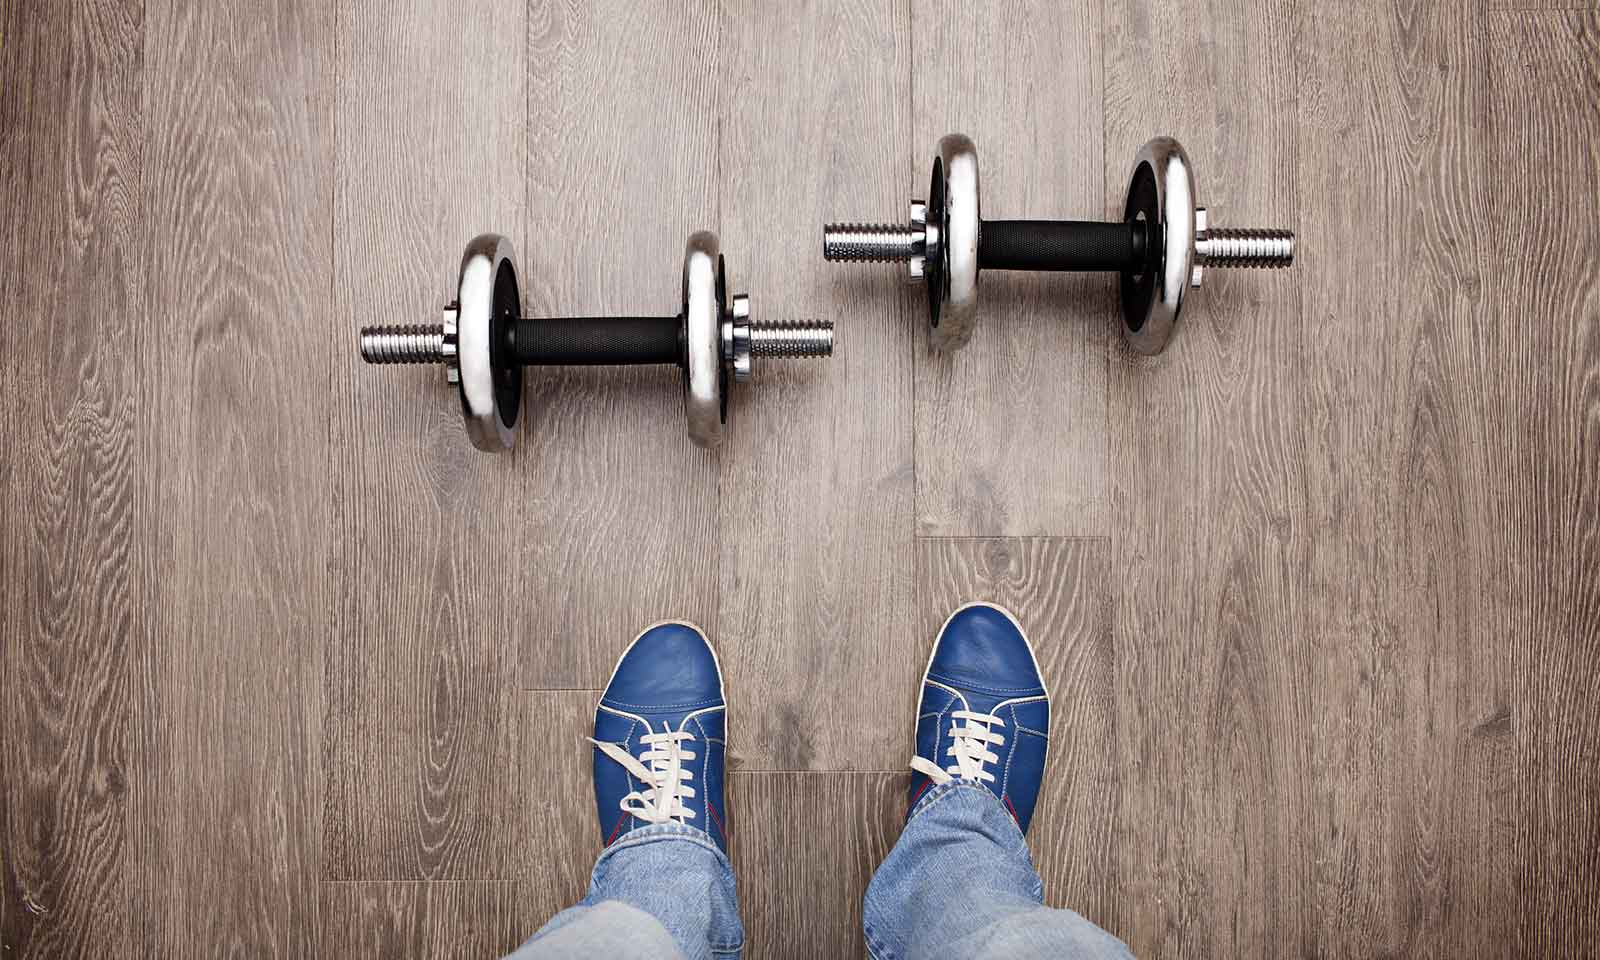 Vital Pieces Of Gym Equipment For Creating The Ultimate Home Gym